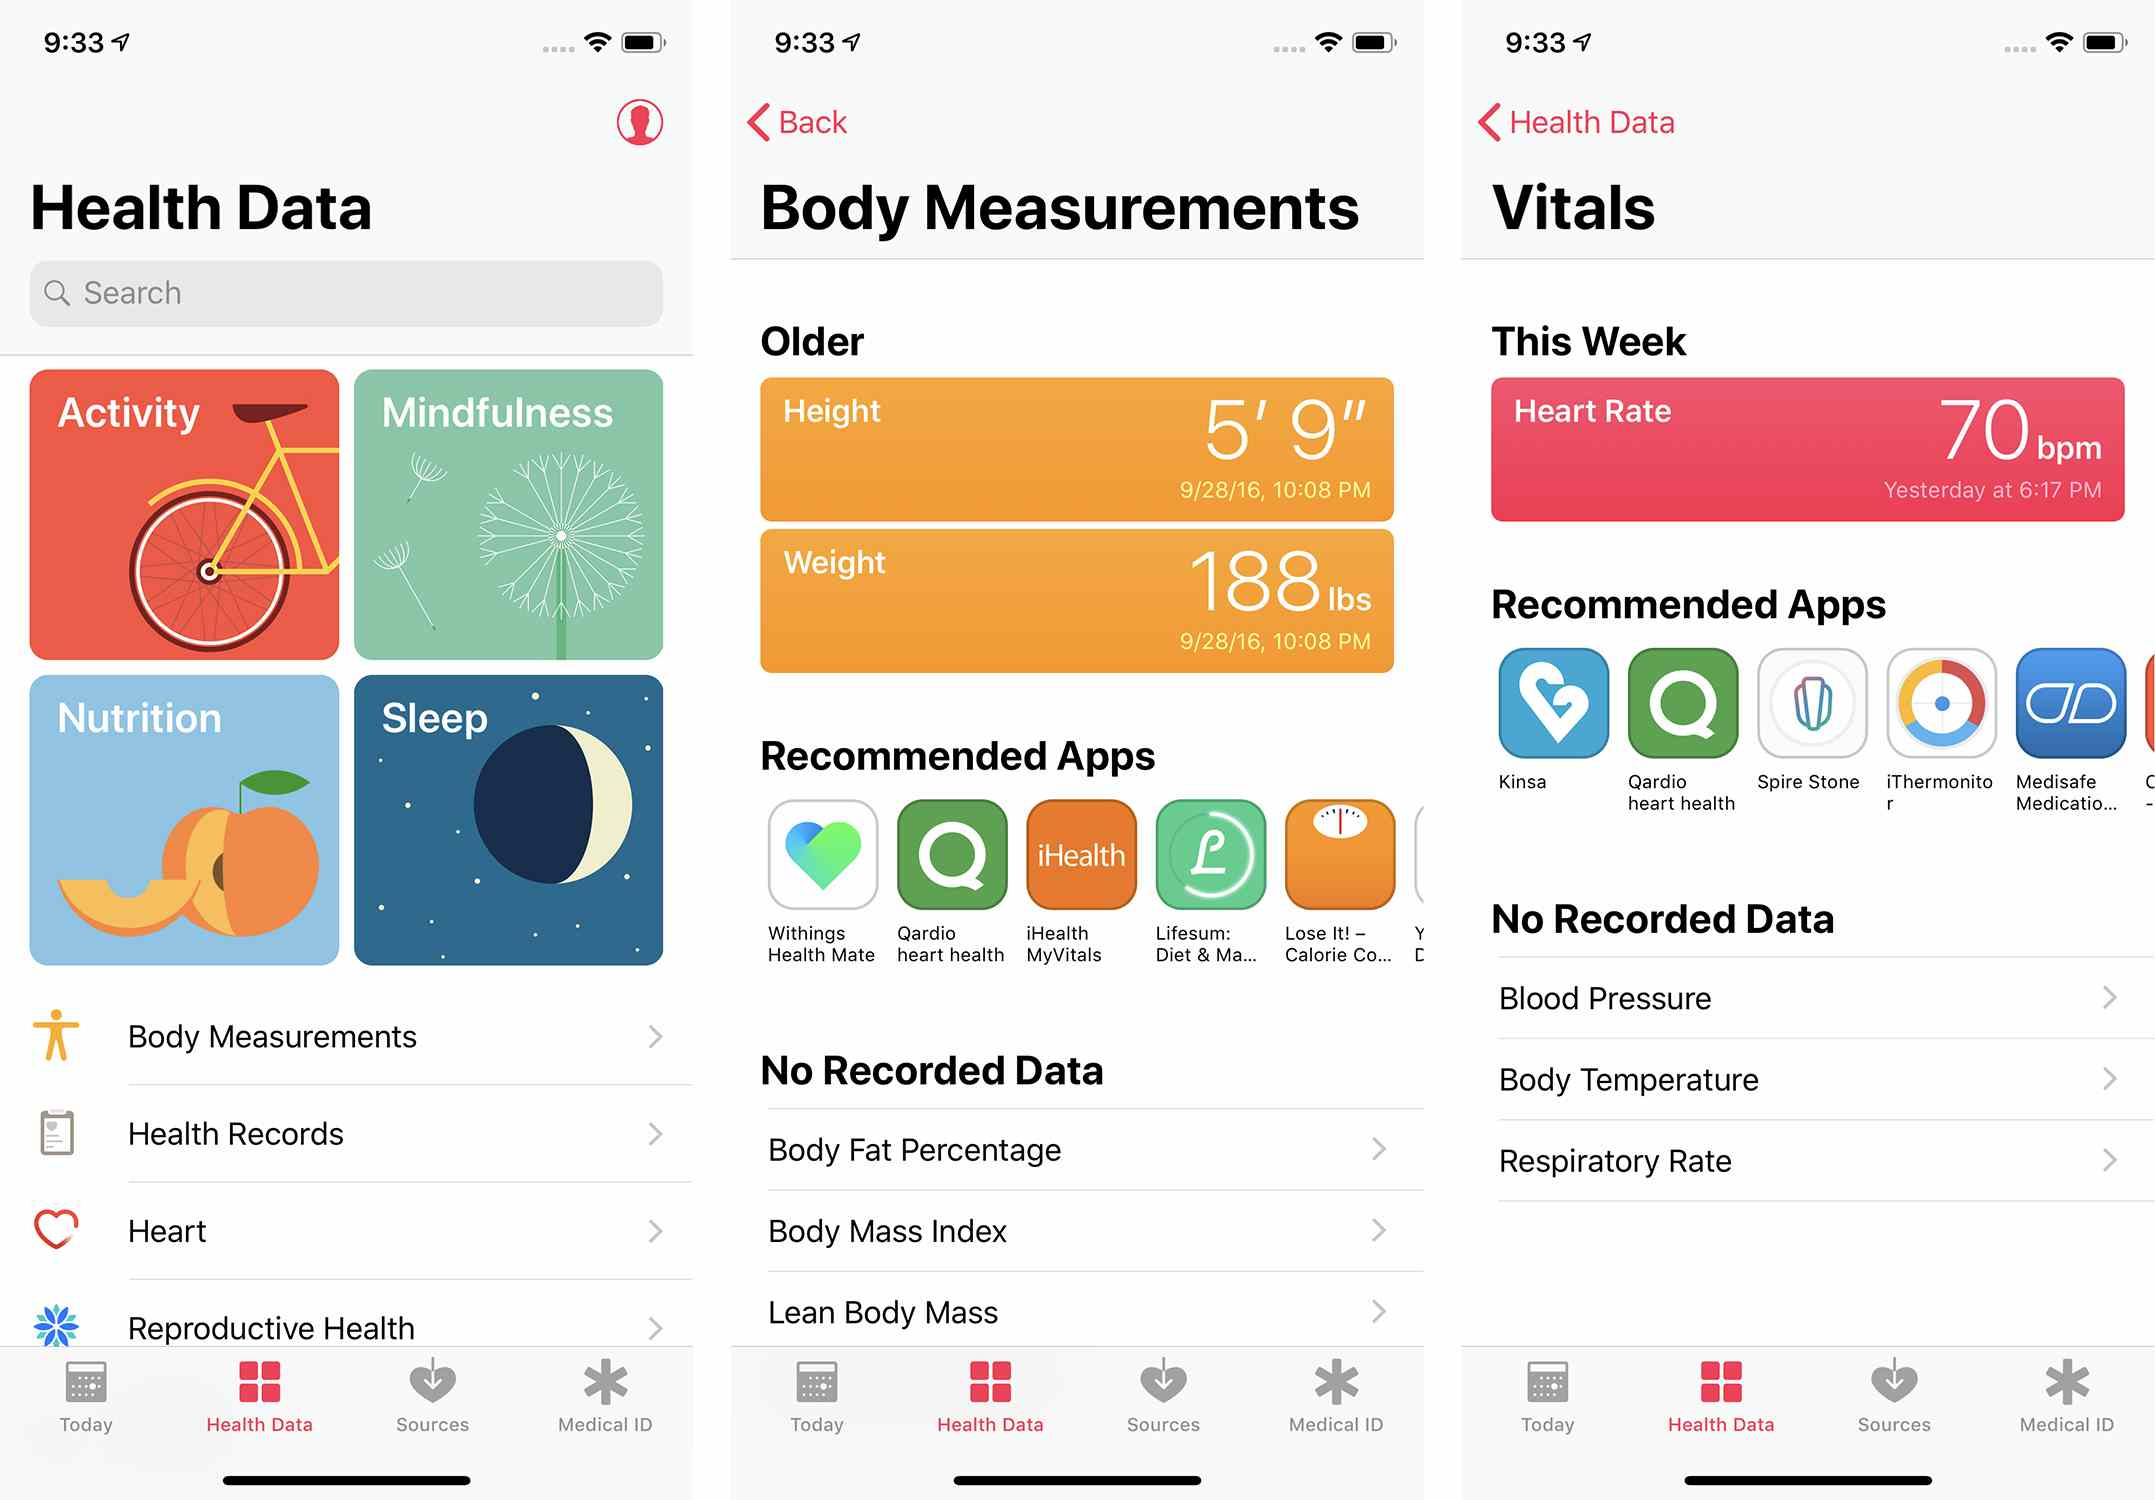 Screenshots of the Health Data section of the Apple Health app